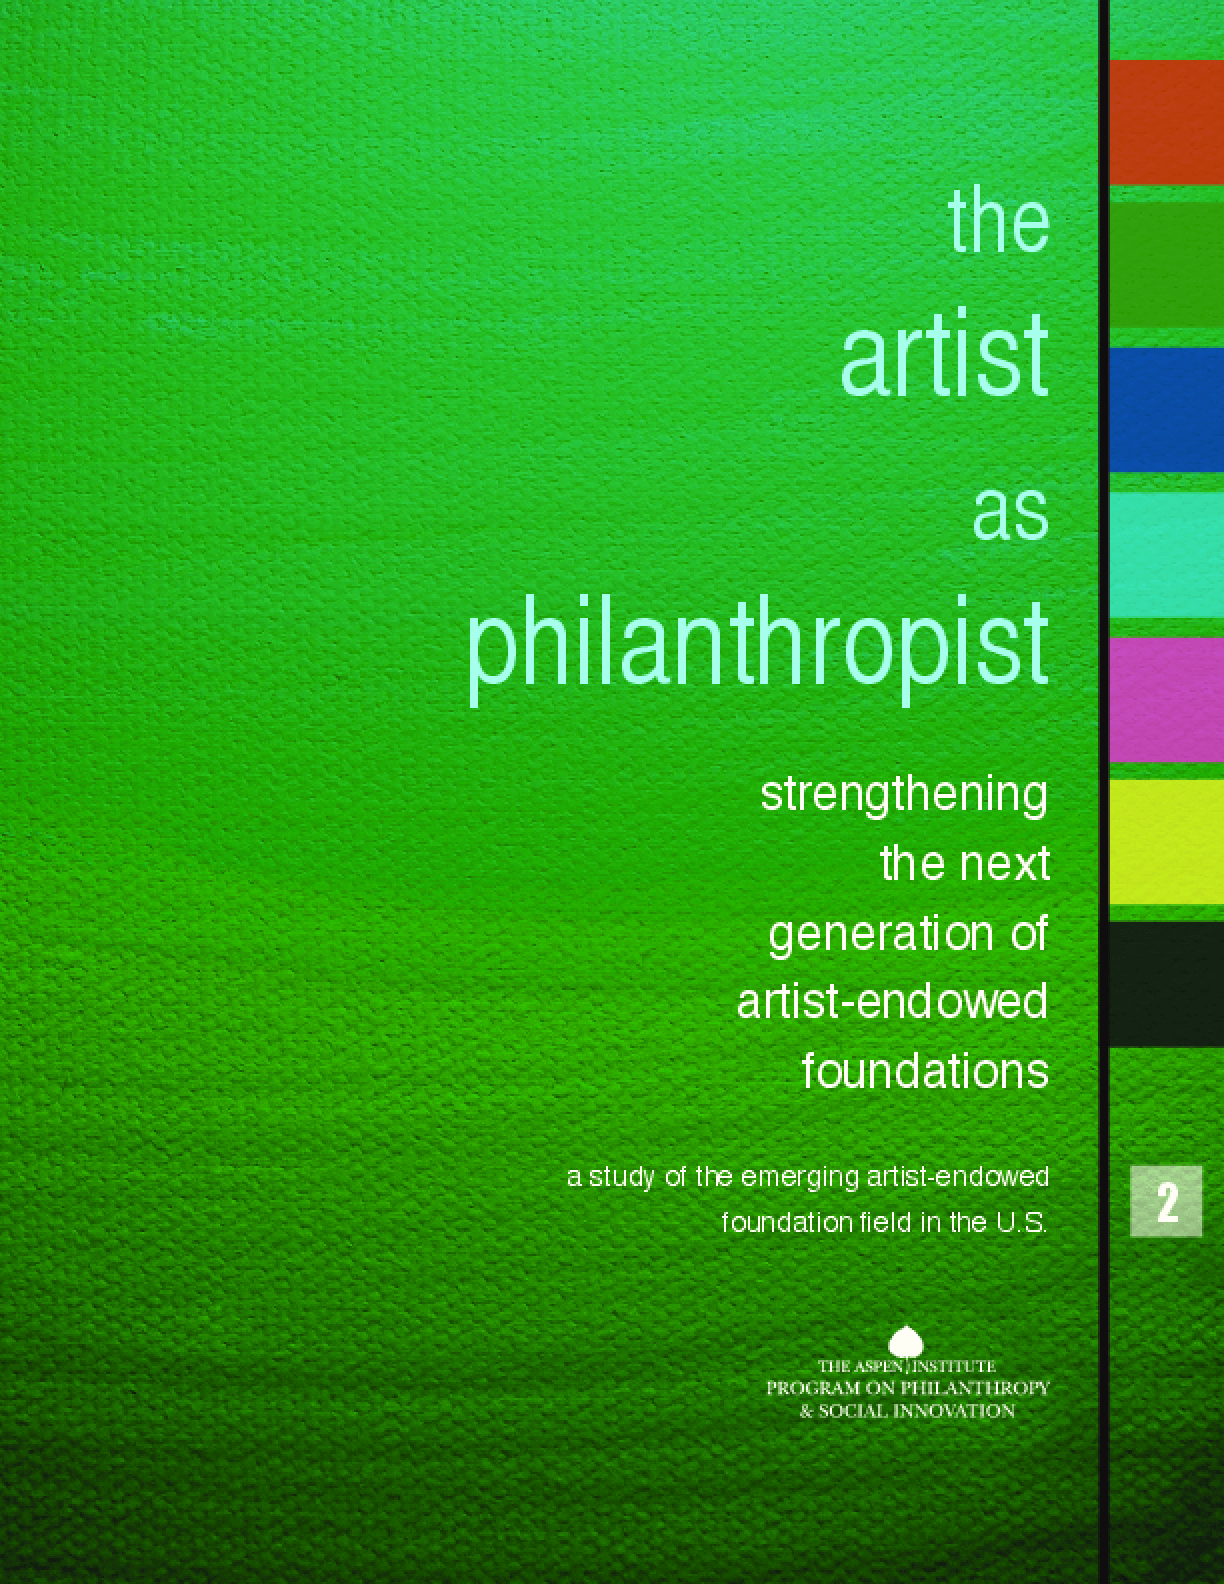 The Artist as Philanthropist: Strengthening the Next Generation of Artist-endowed Foundations: A Study of the Emerging Artist-endowed Foundation Field in the US